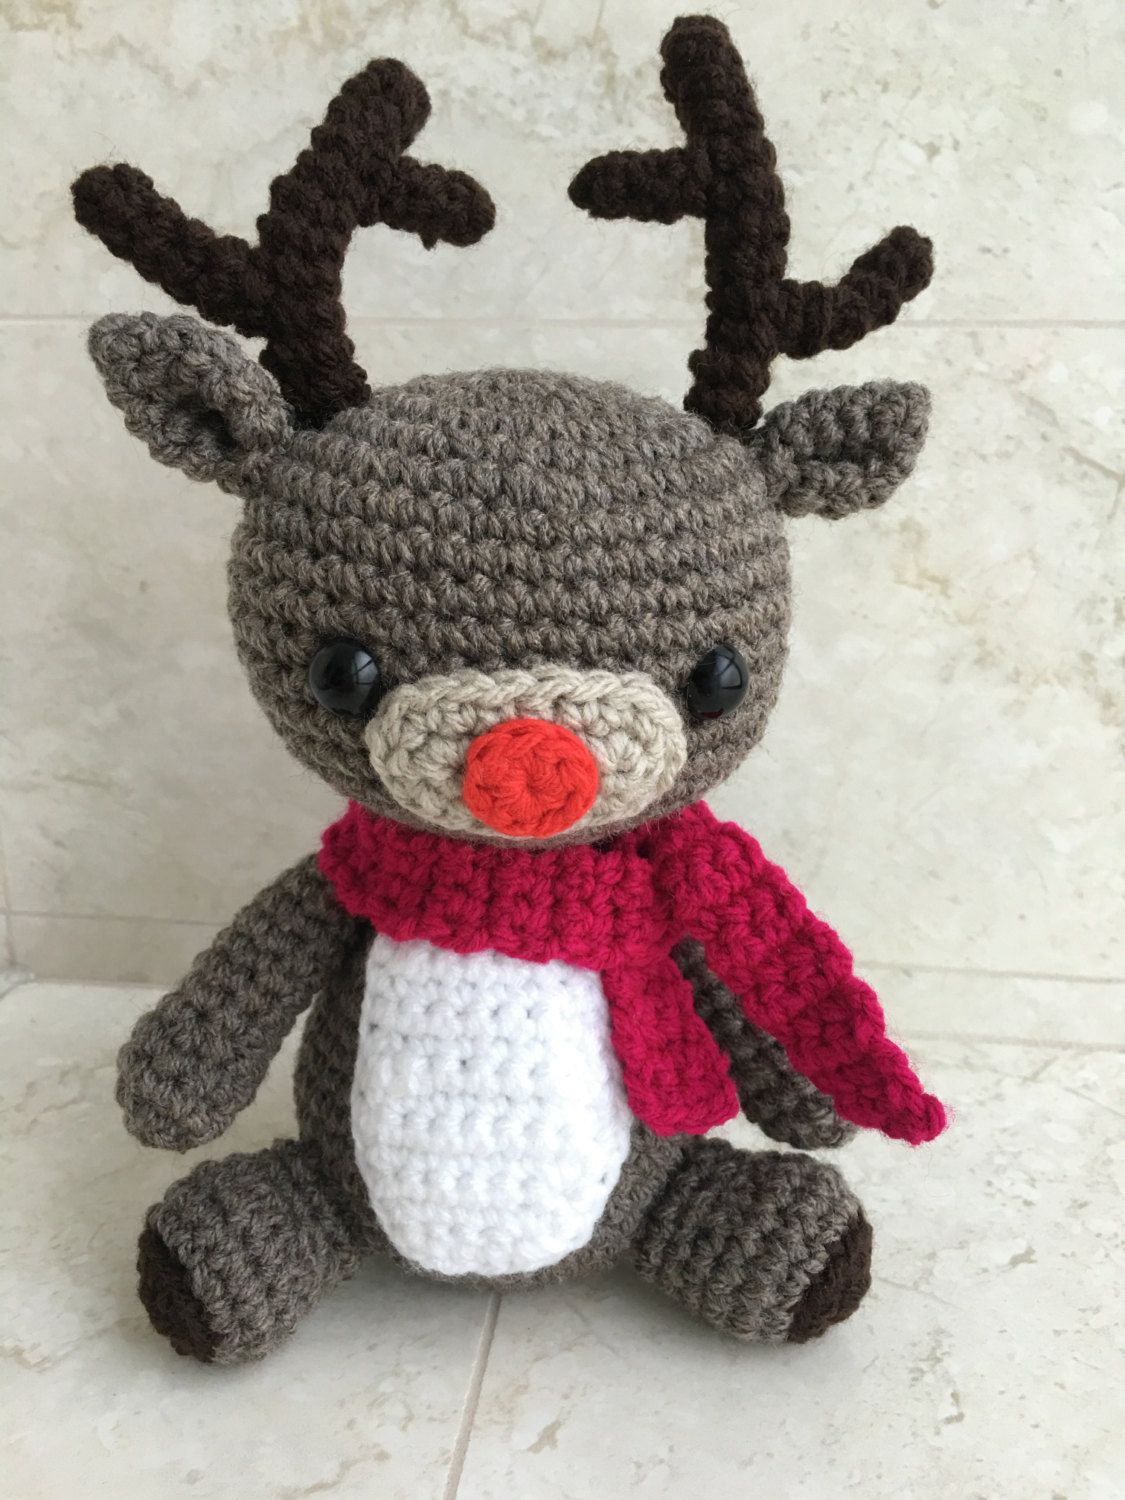 LUXE COLLECTION: 100% Cotton Amigurumi Rudolph Reindeer | Etsy ... | 1500x1125